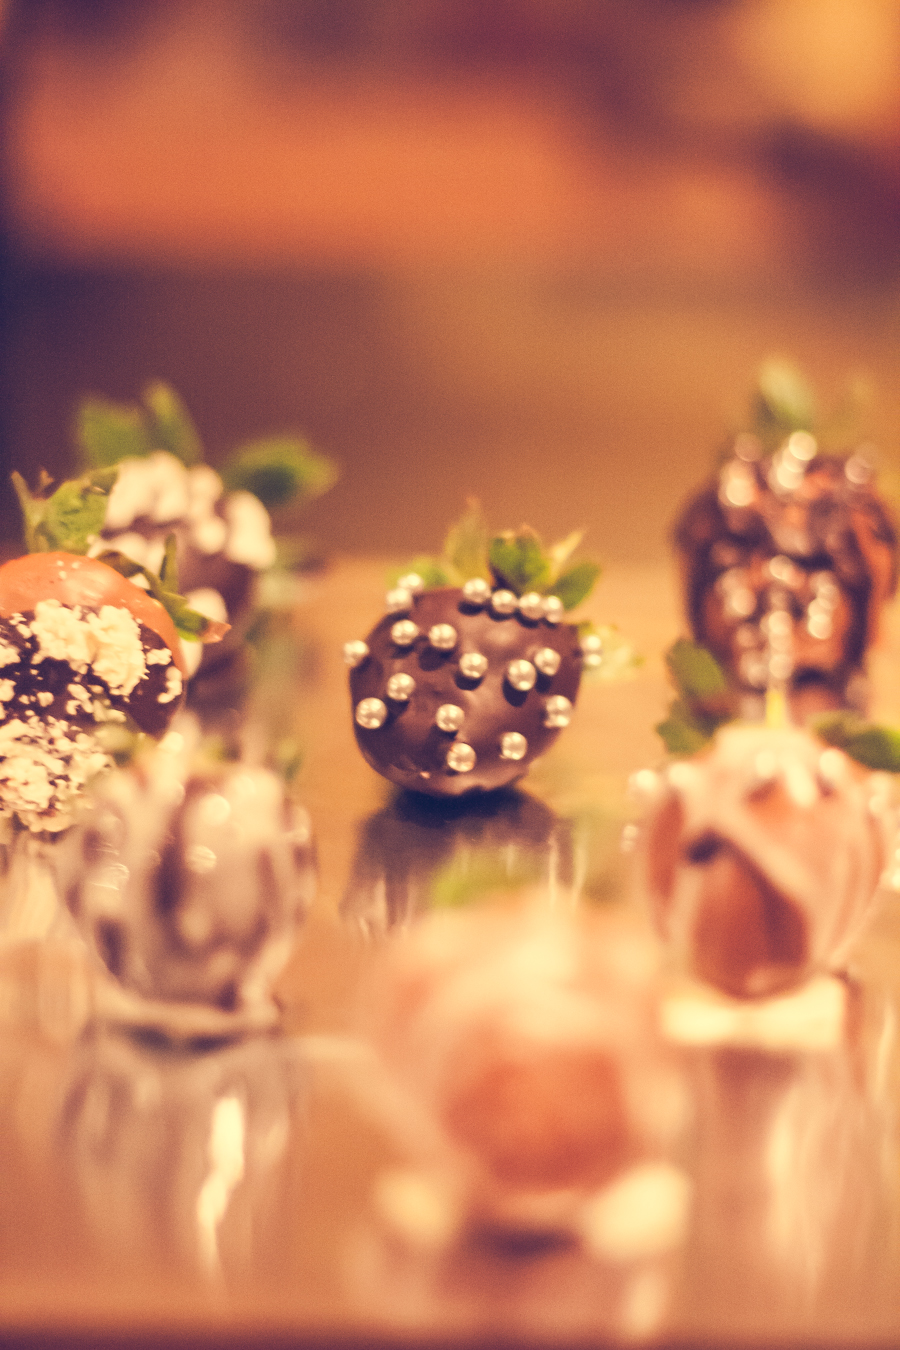 Chocolate Strawberry with Silver Balls